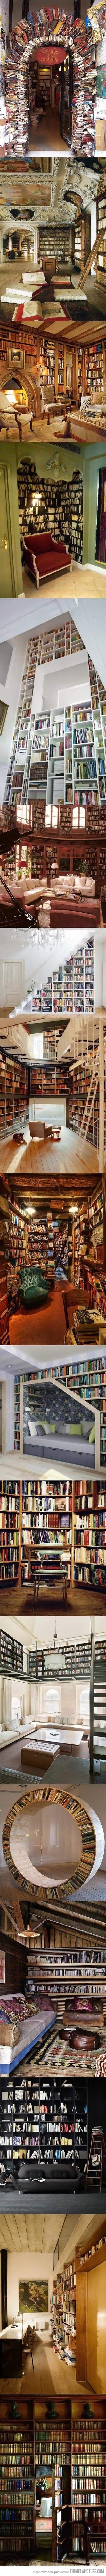 Best Home Library Designs via The MetaPicture